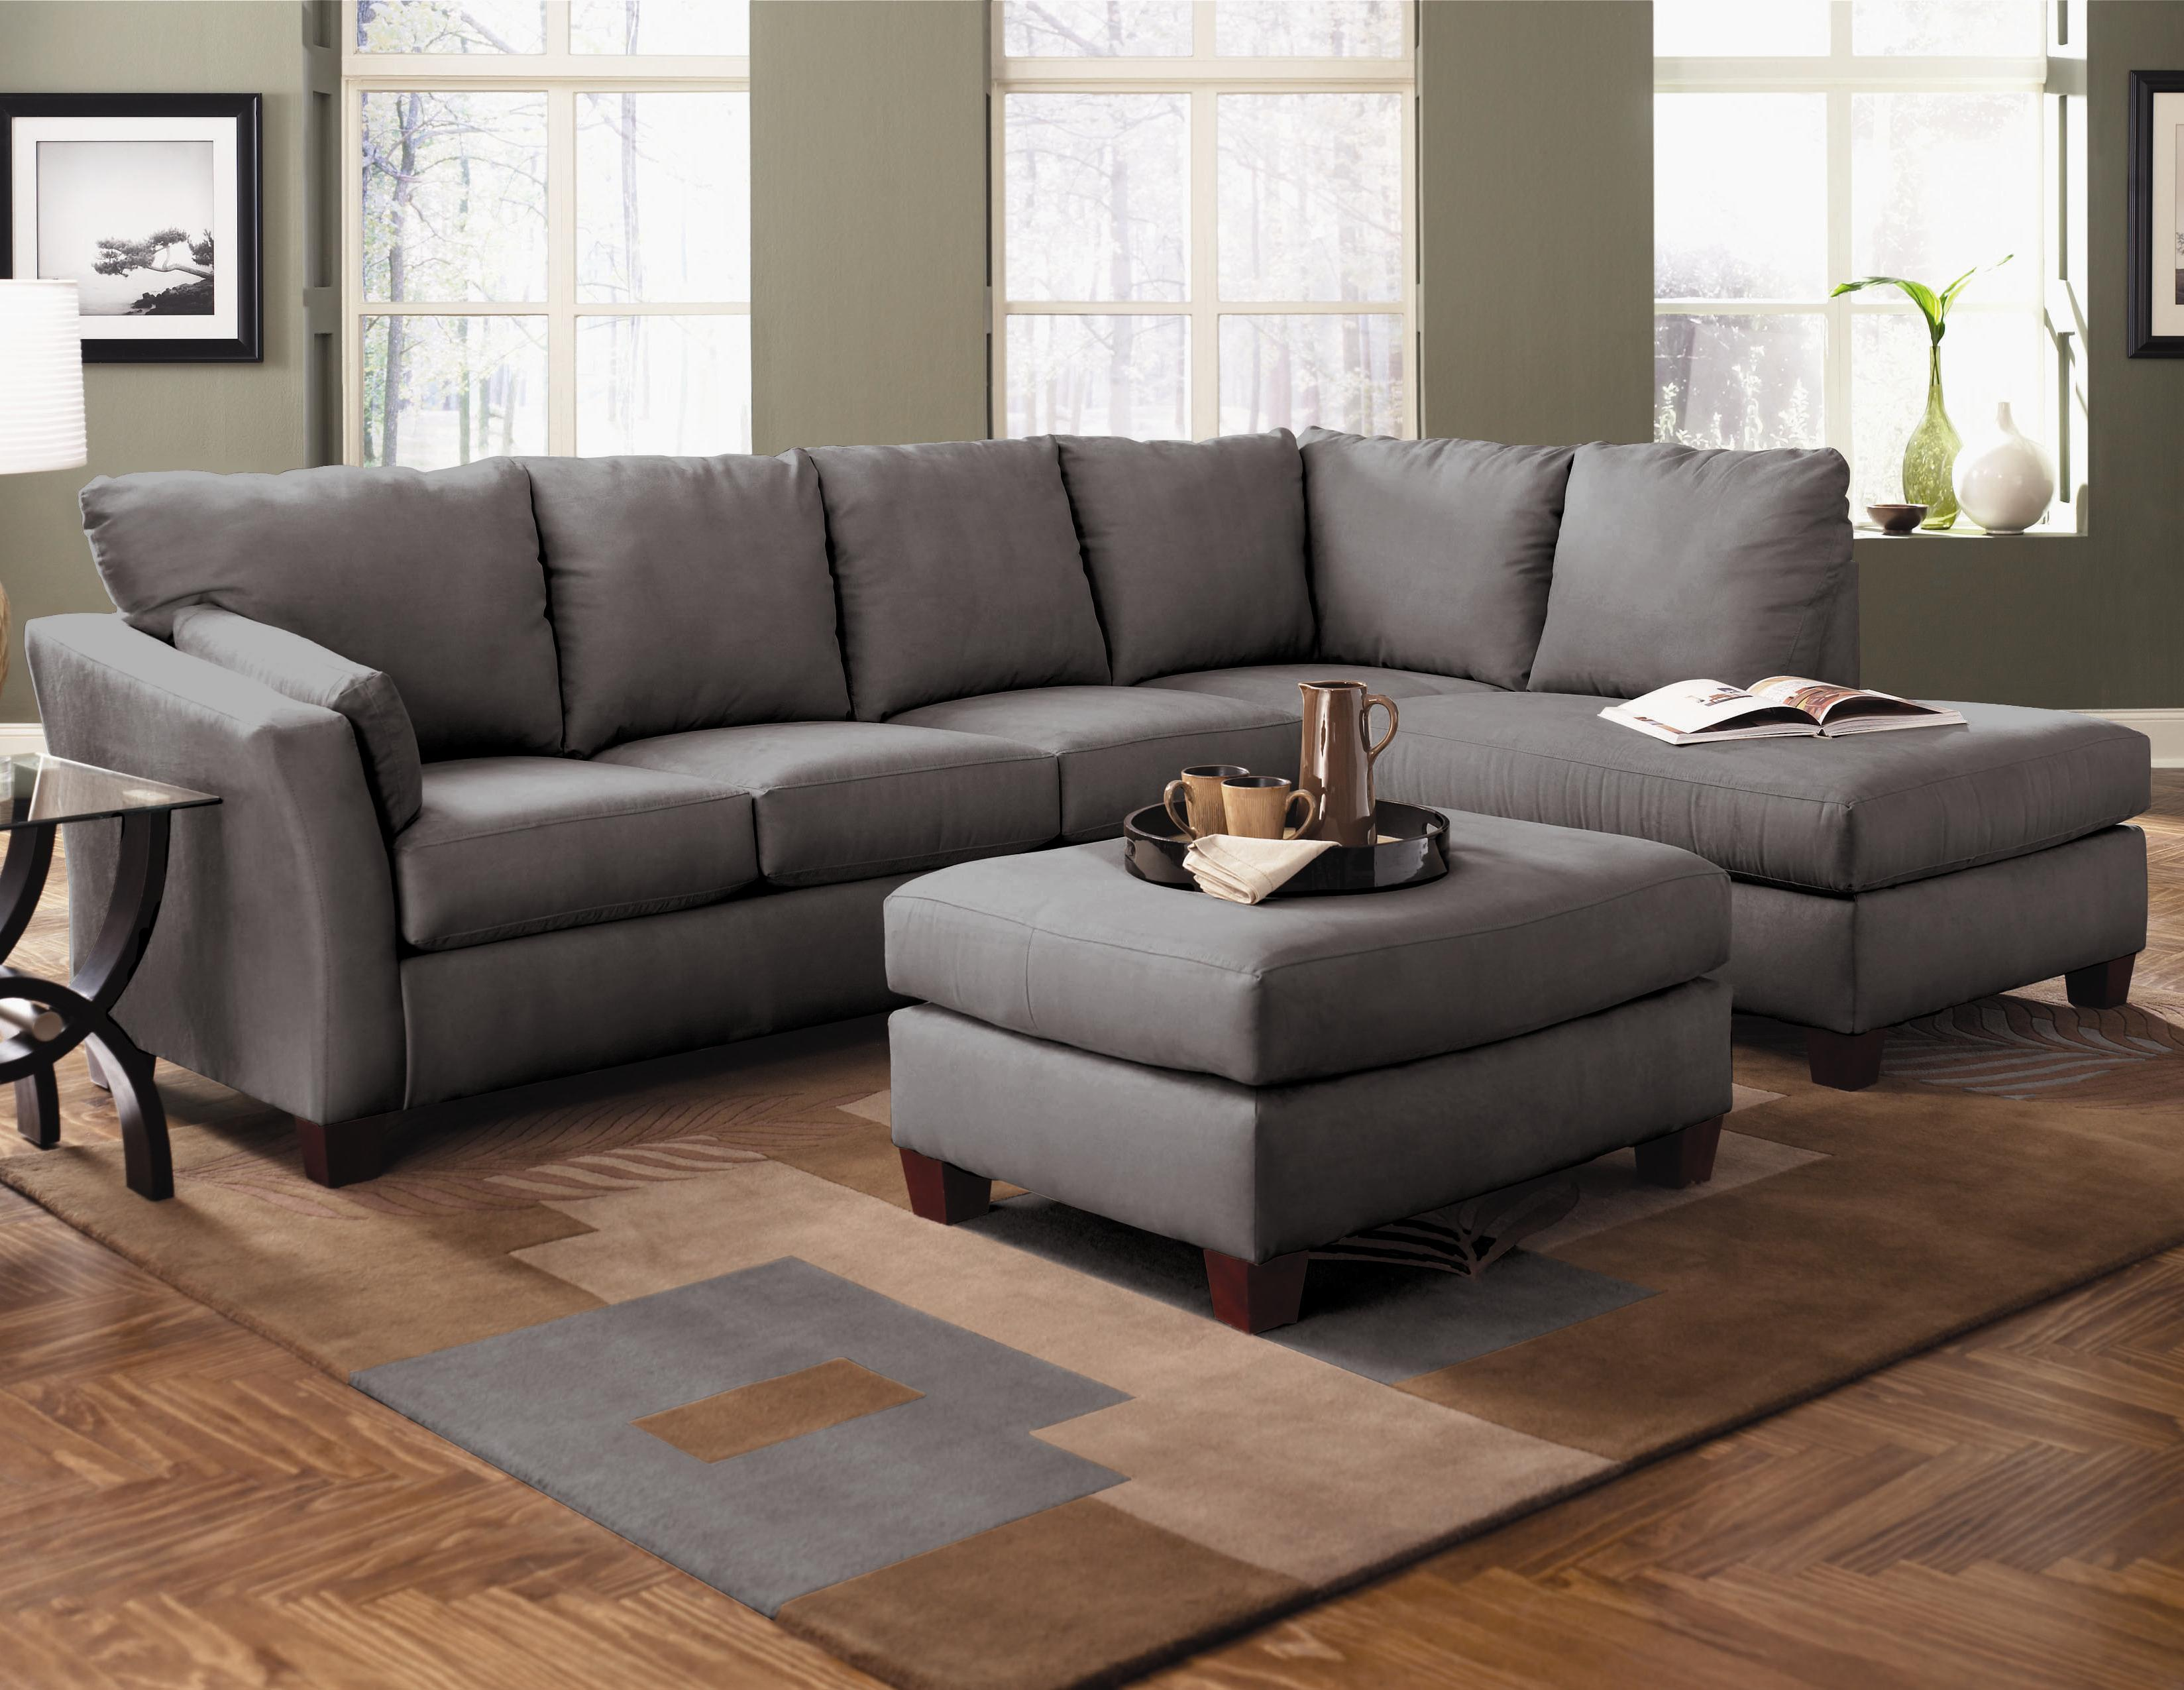 serta by chaise hughes products number casual furniture item sofa sectional lfchs upholstery with contemporary